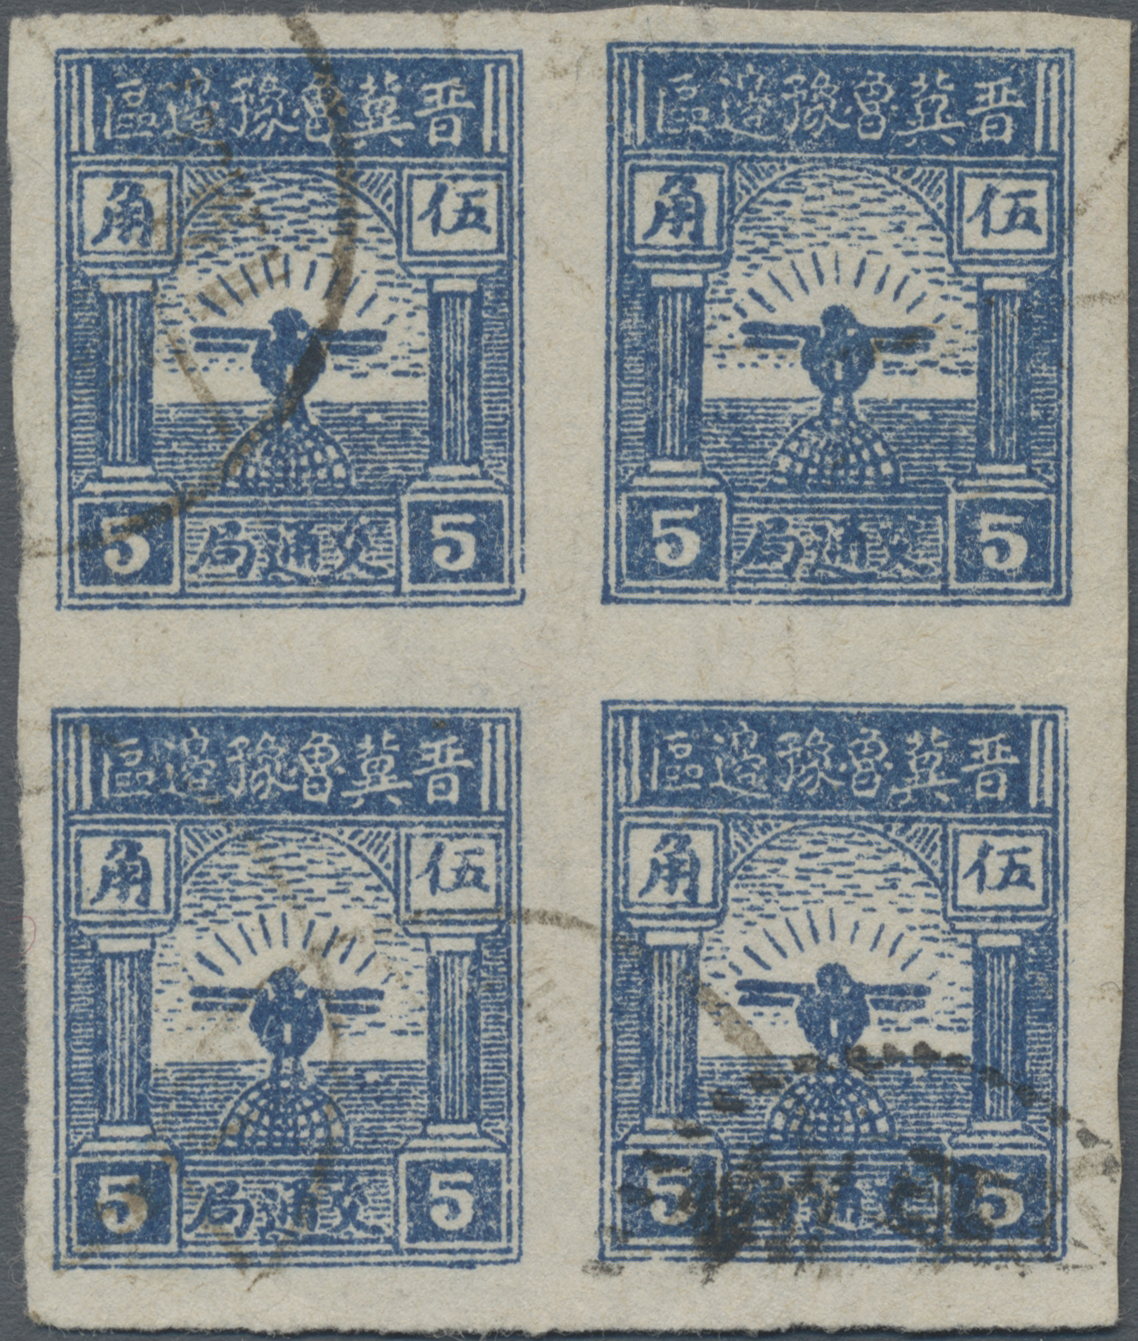 Lot 05518 - China - Volksrepublik - Provinzen  -  Auktionshaus Christoph Gärtner GmbH & Co. KG Sale #45- Special Auction China